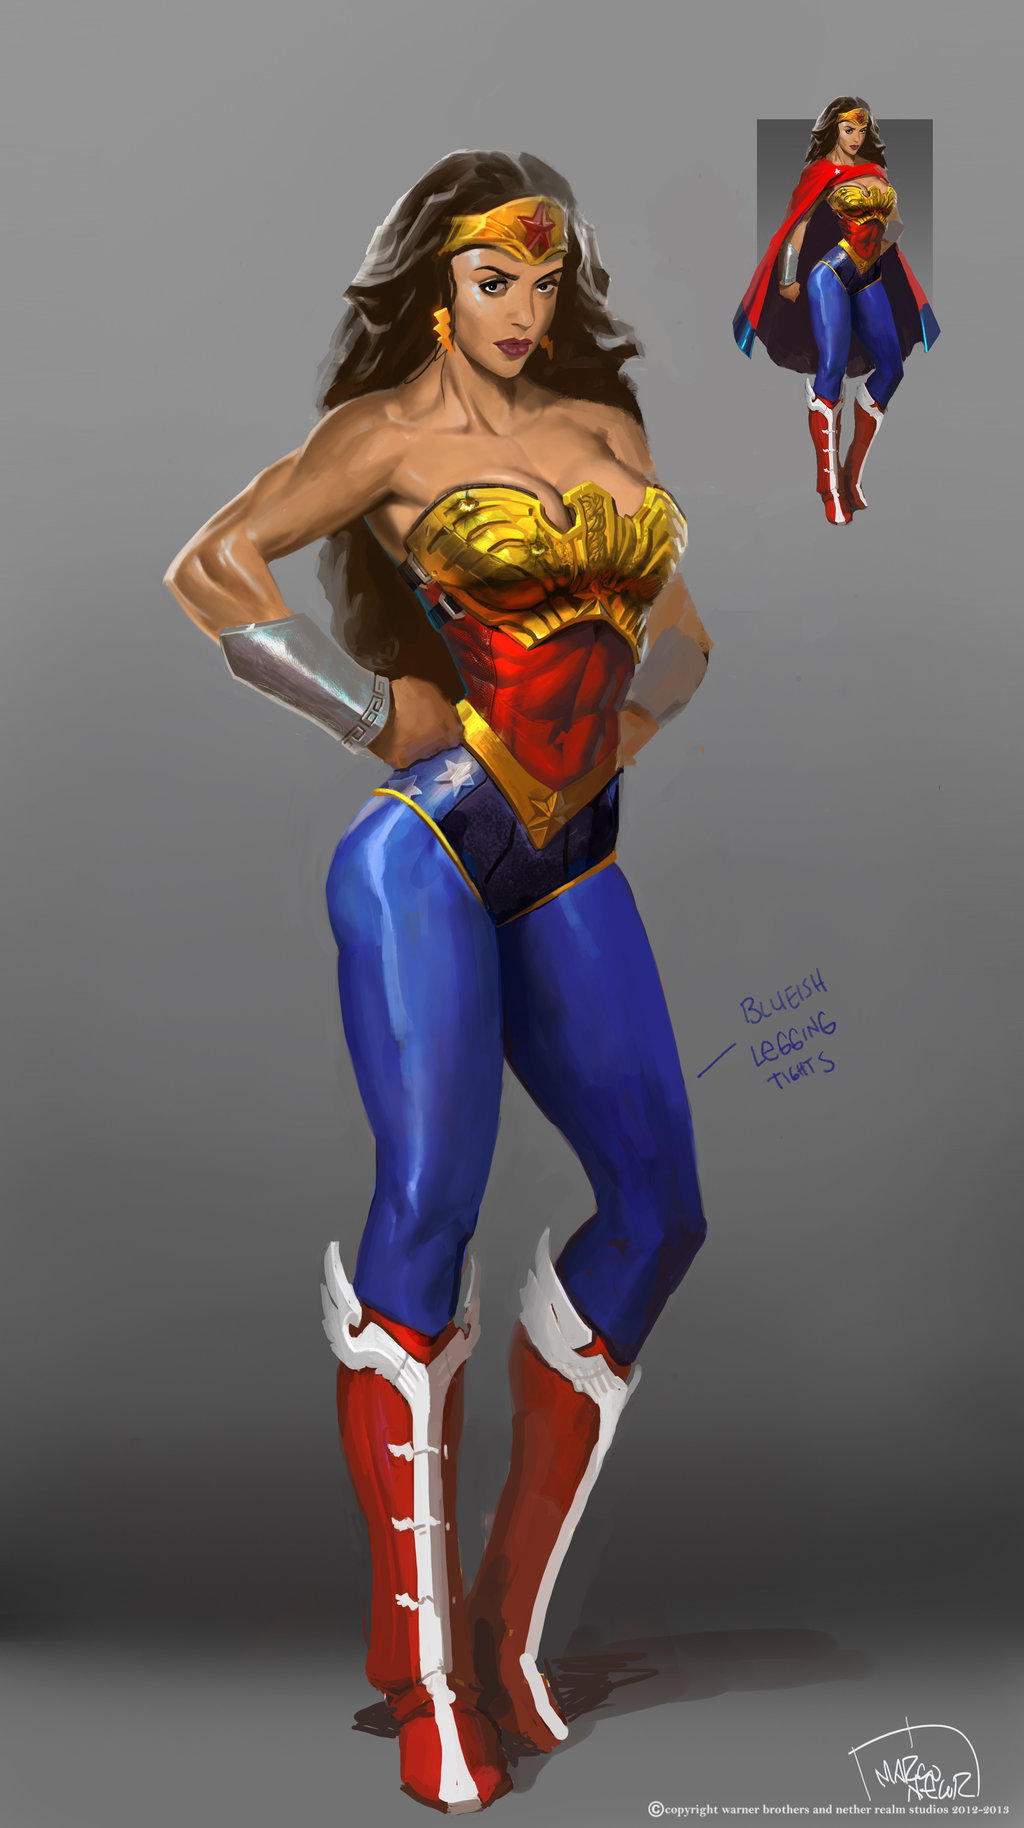 wonder_woman_main_costume_by_marconelor-d6gbe9w